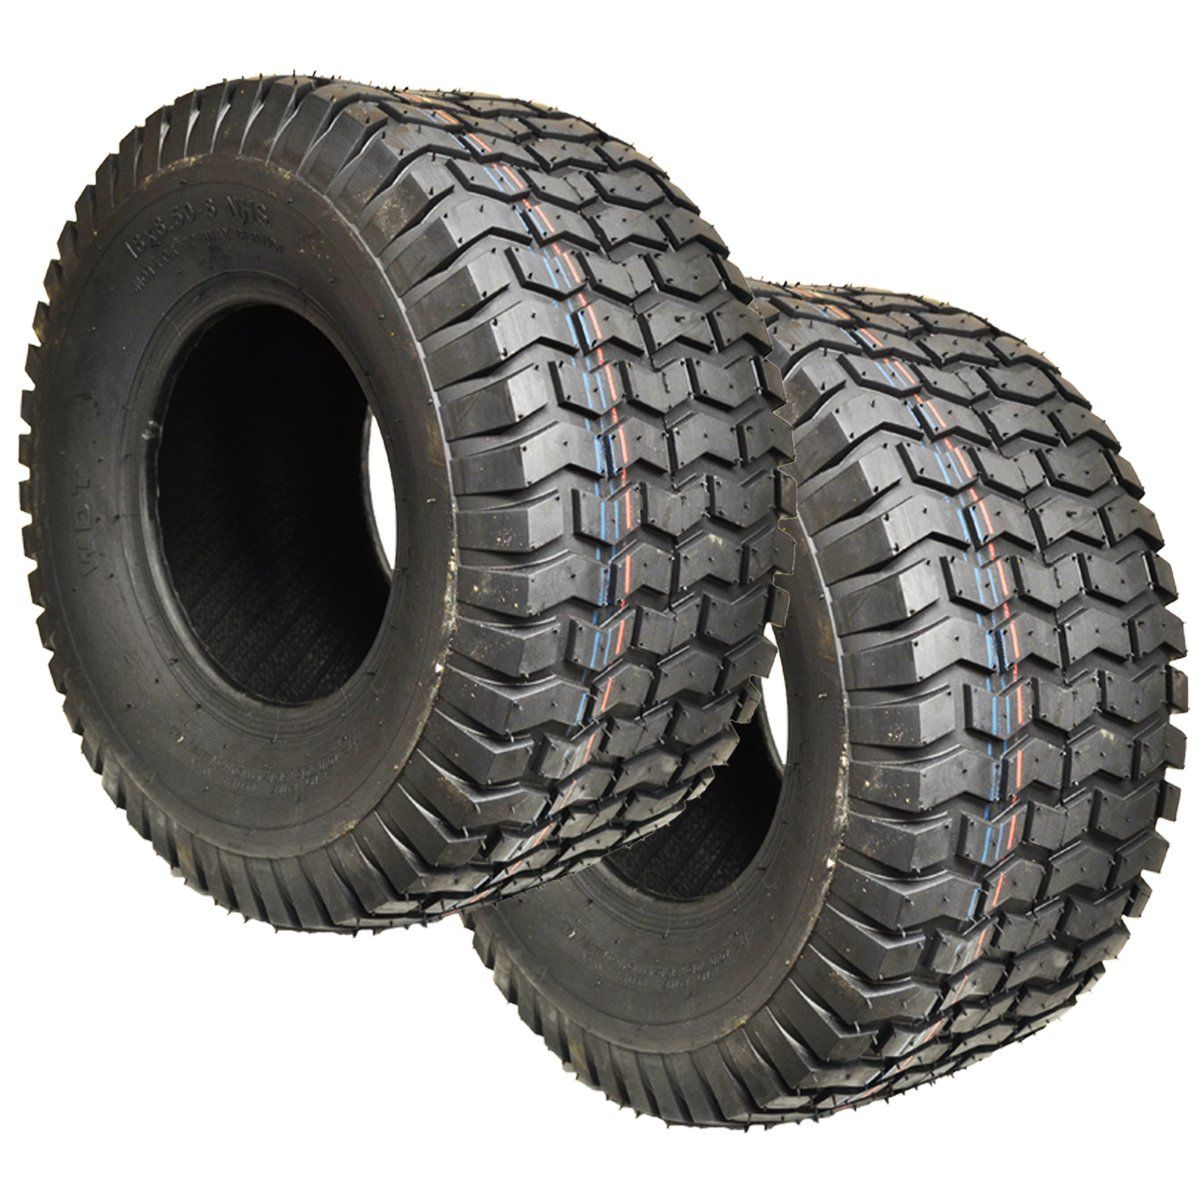 Replaces Toro 2pk Lawn And Garden Turf Saver Tire 20x88 20x8 008 20x8x8 Tire Find Out More About The Riding Lawn Mowers Lawn Mower Tires Lawn Mower Tractor